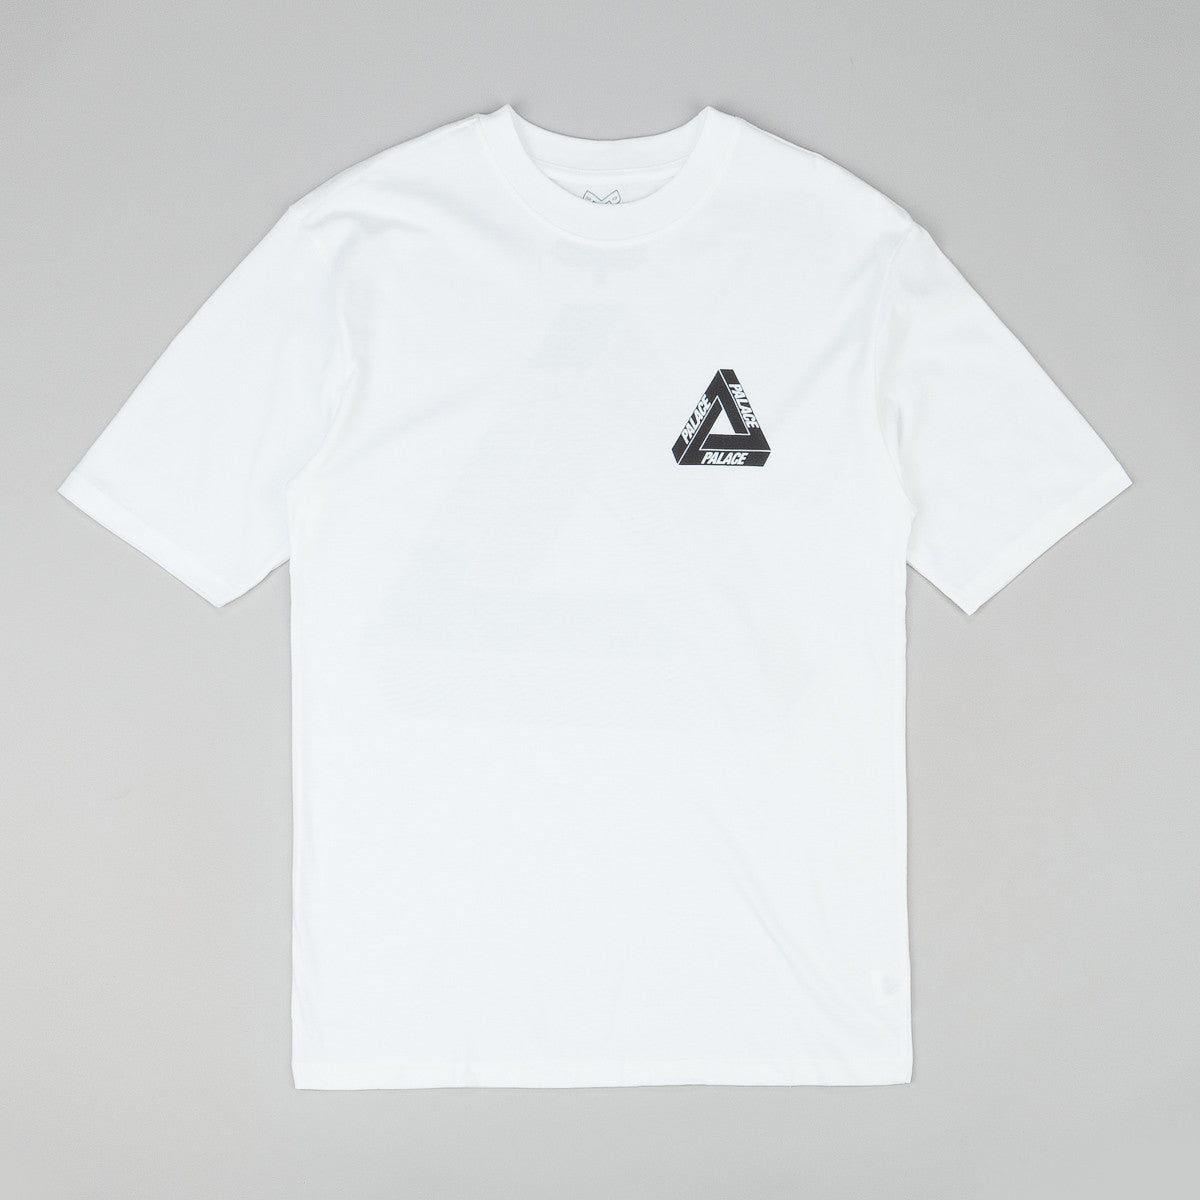 Palace Drury Yard T-Shirt